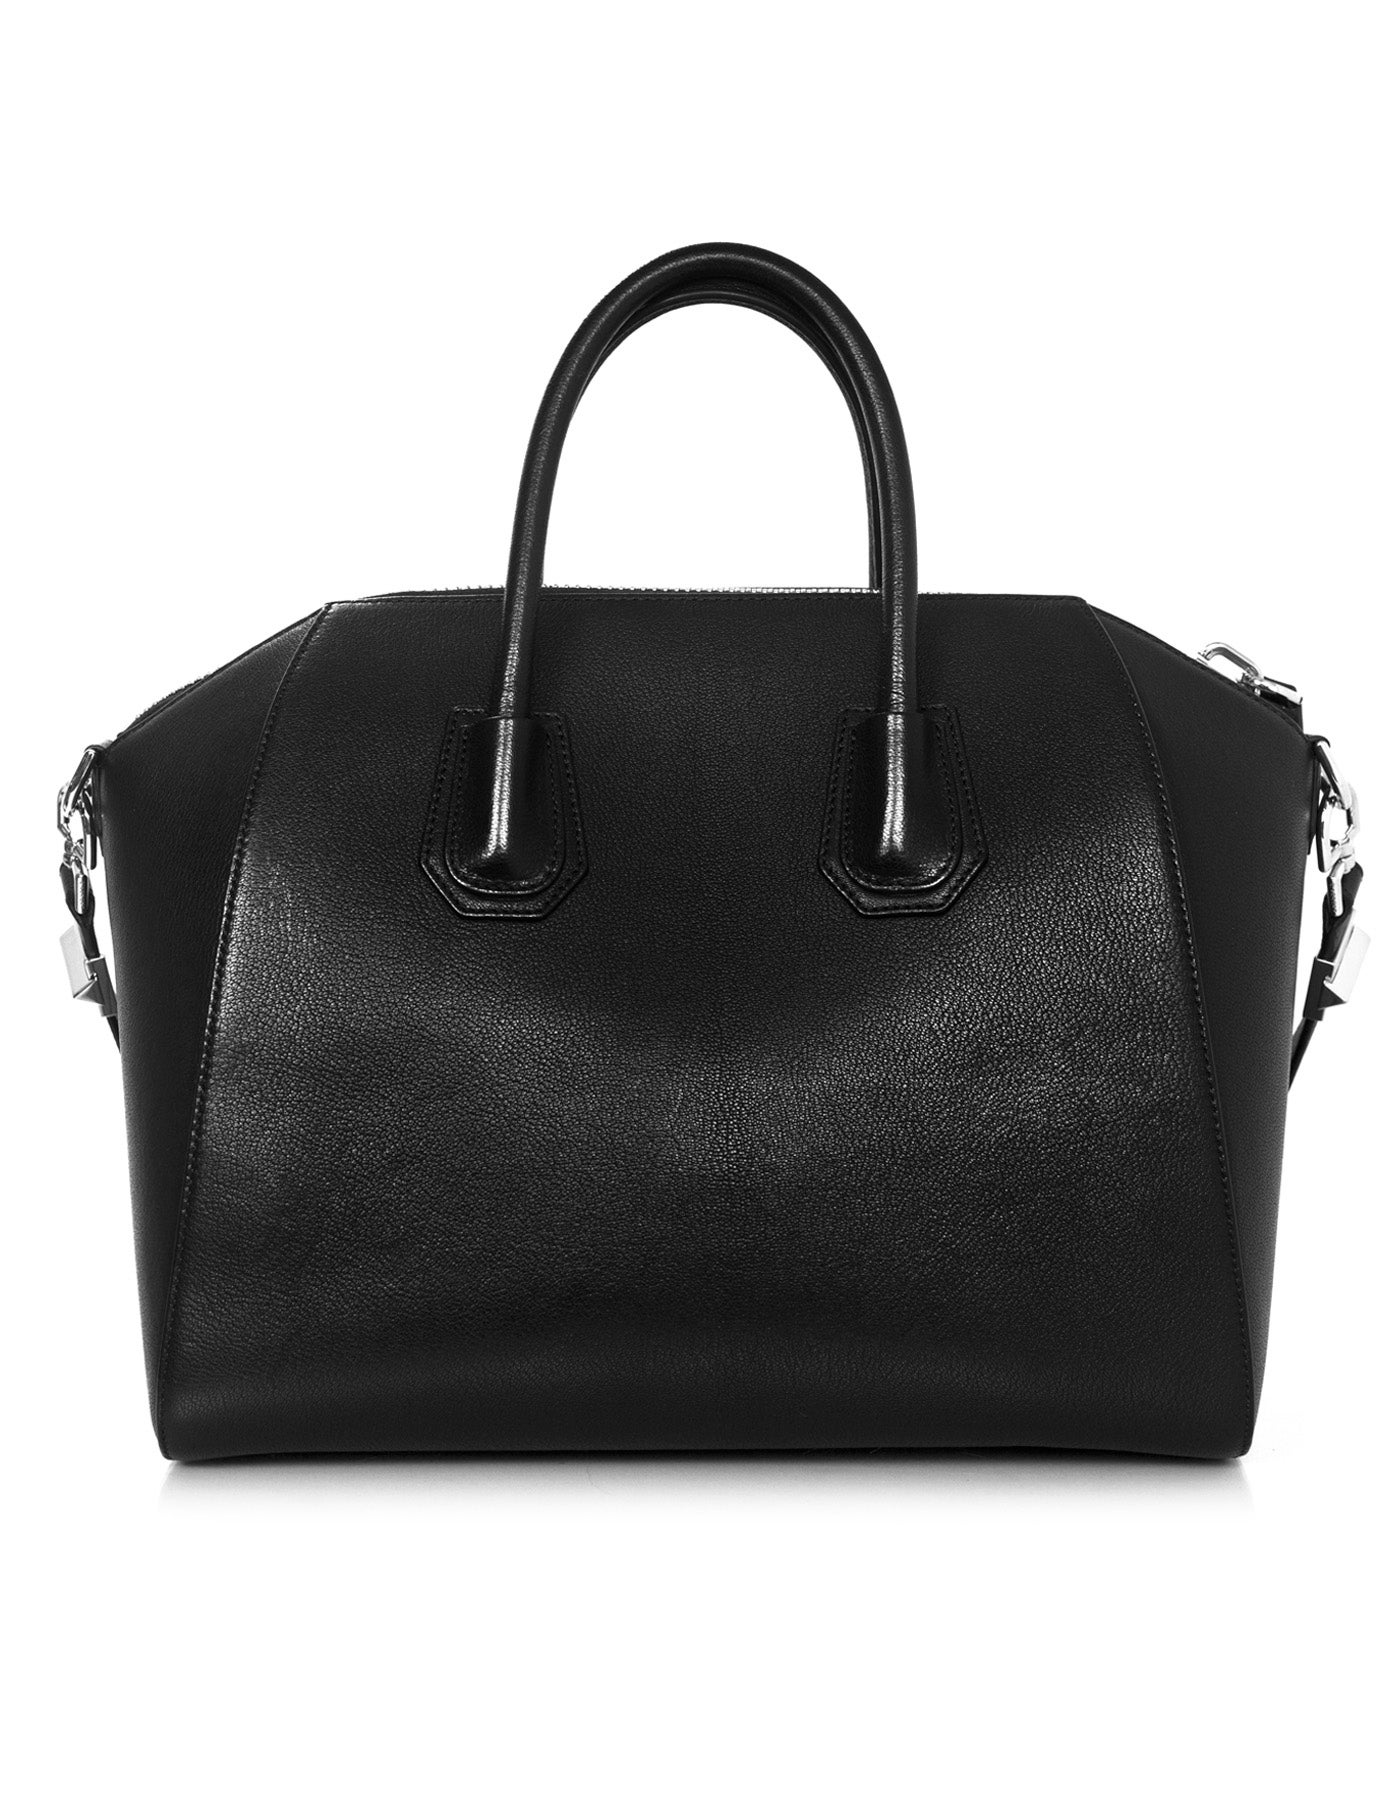 8dfd9046a3 Givenchy Black Grained Sugar Goat Leather Medium Antigona Satchel Bag For  Sale at 1stdibs